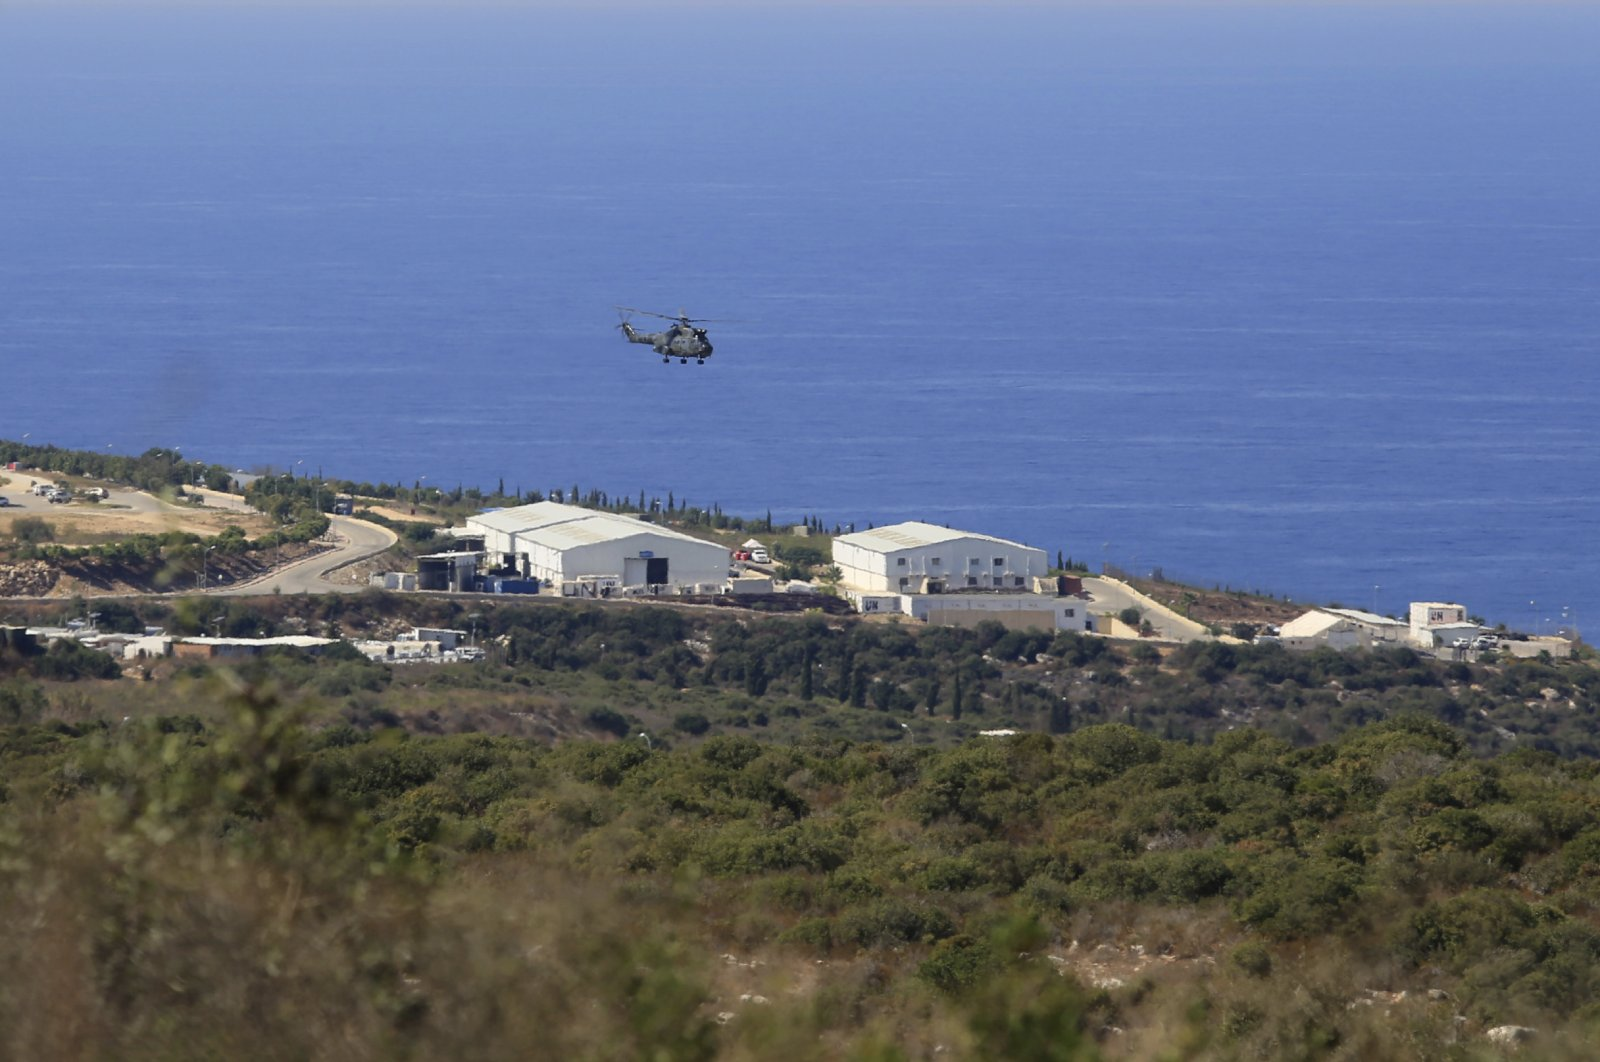 A helicopter flies over a base of the U.N. peacekeeping force, in the southern town of Naqoura, Lebanon, Oct. 14, 2020. (AP Photo)